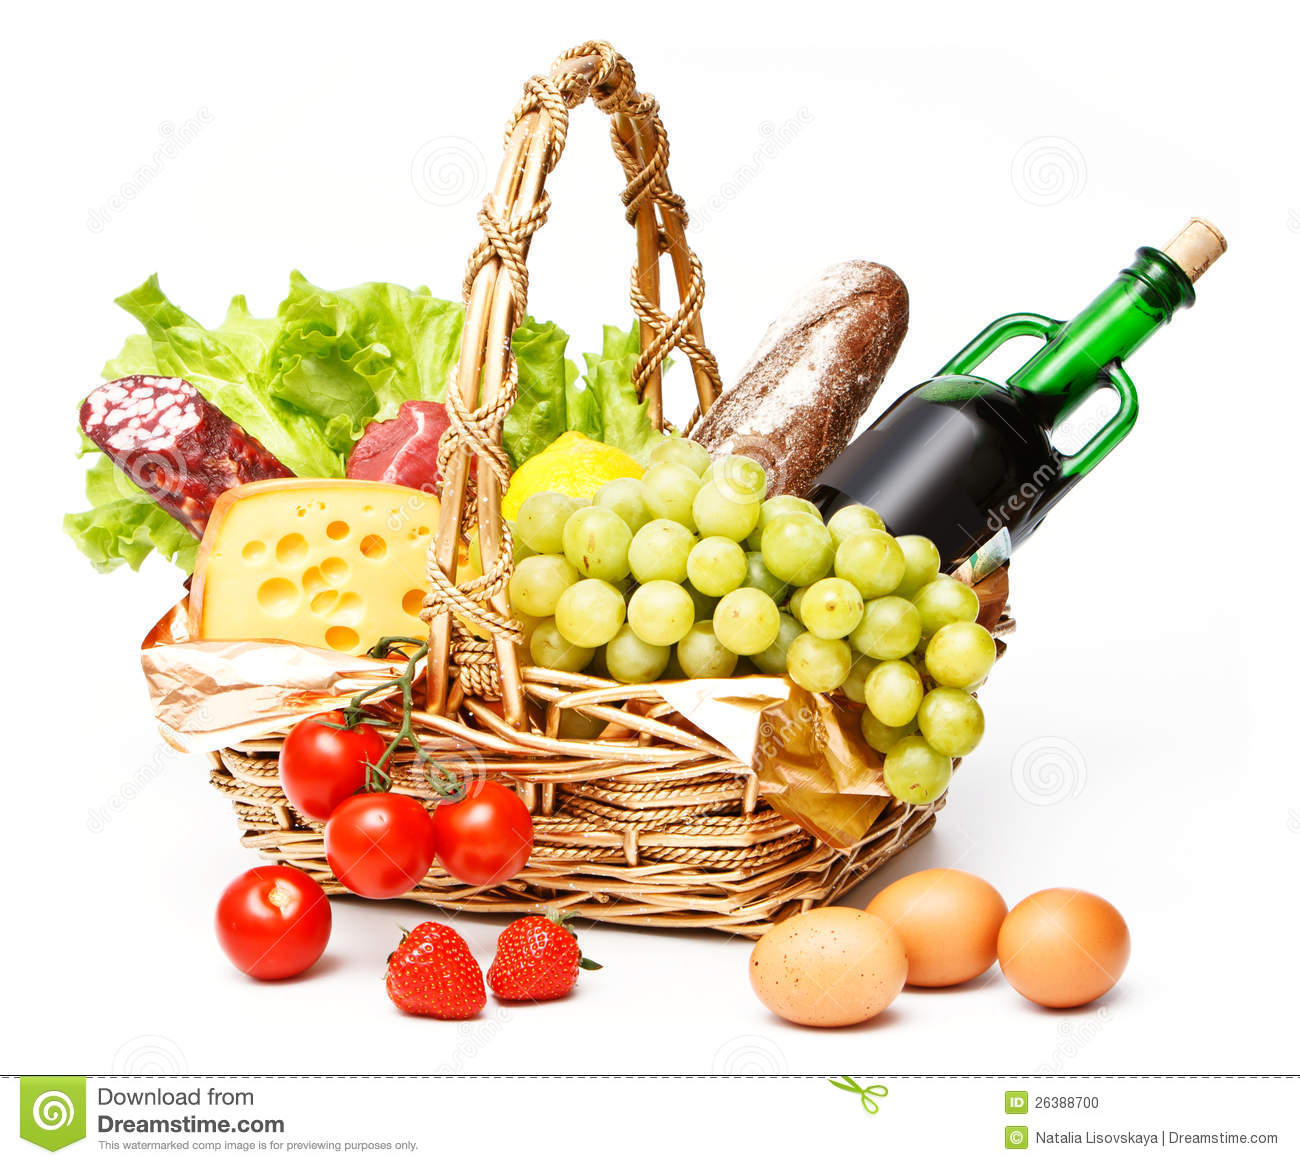 Basket Of Goods Stock Photo - Image: 26388700